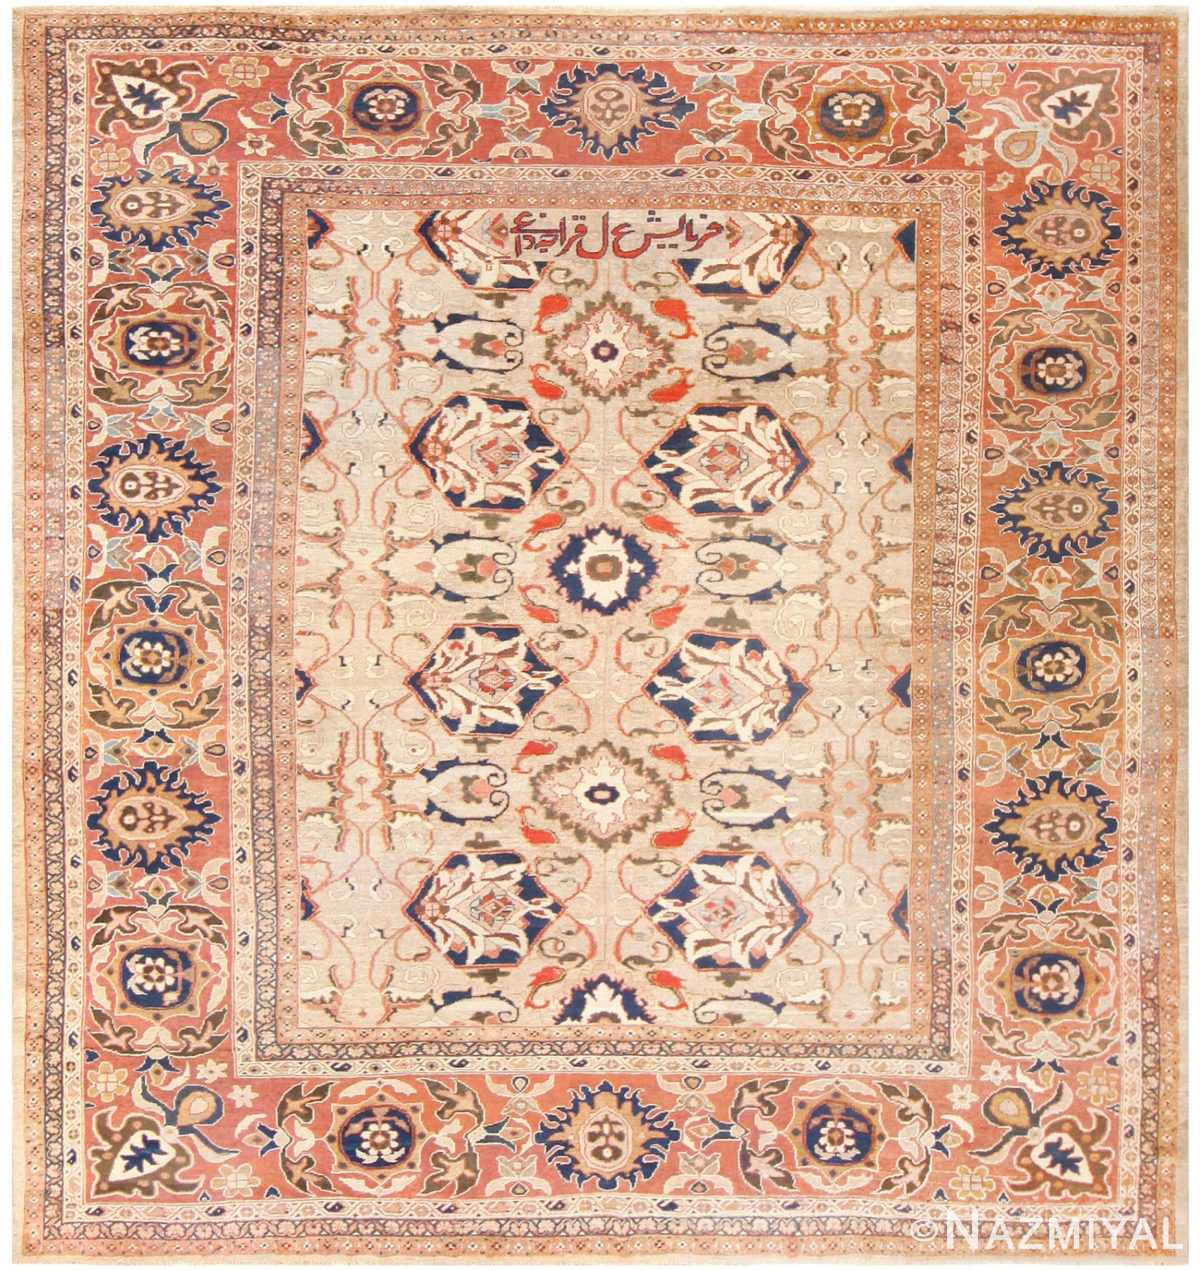 Antique Persian Sultanabad Carpet by Ziegler 48150 Nazmiyal